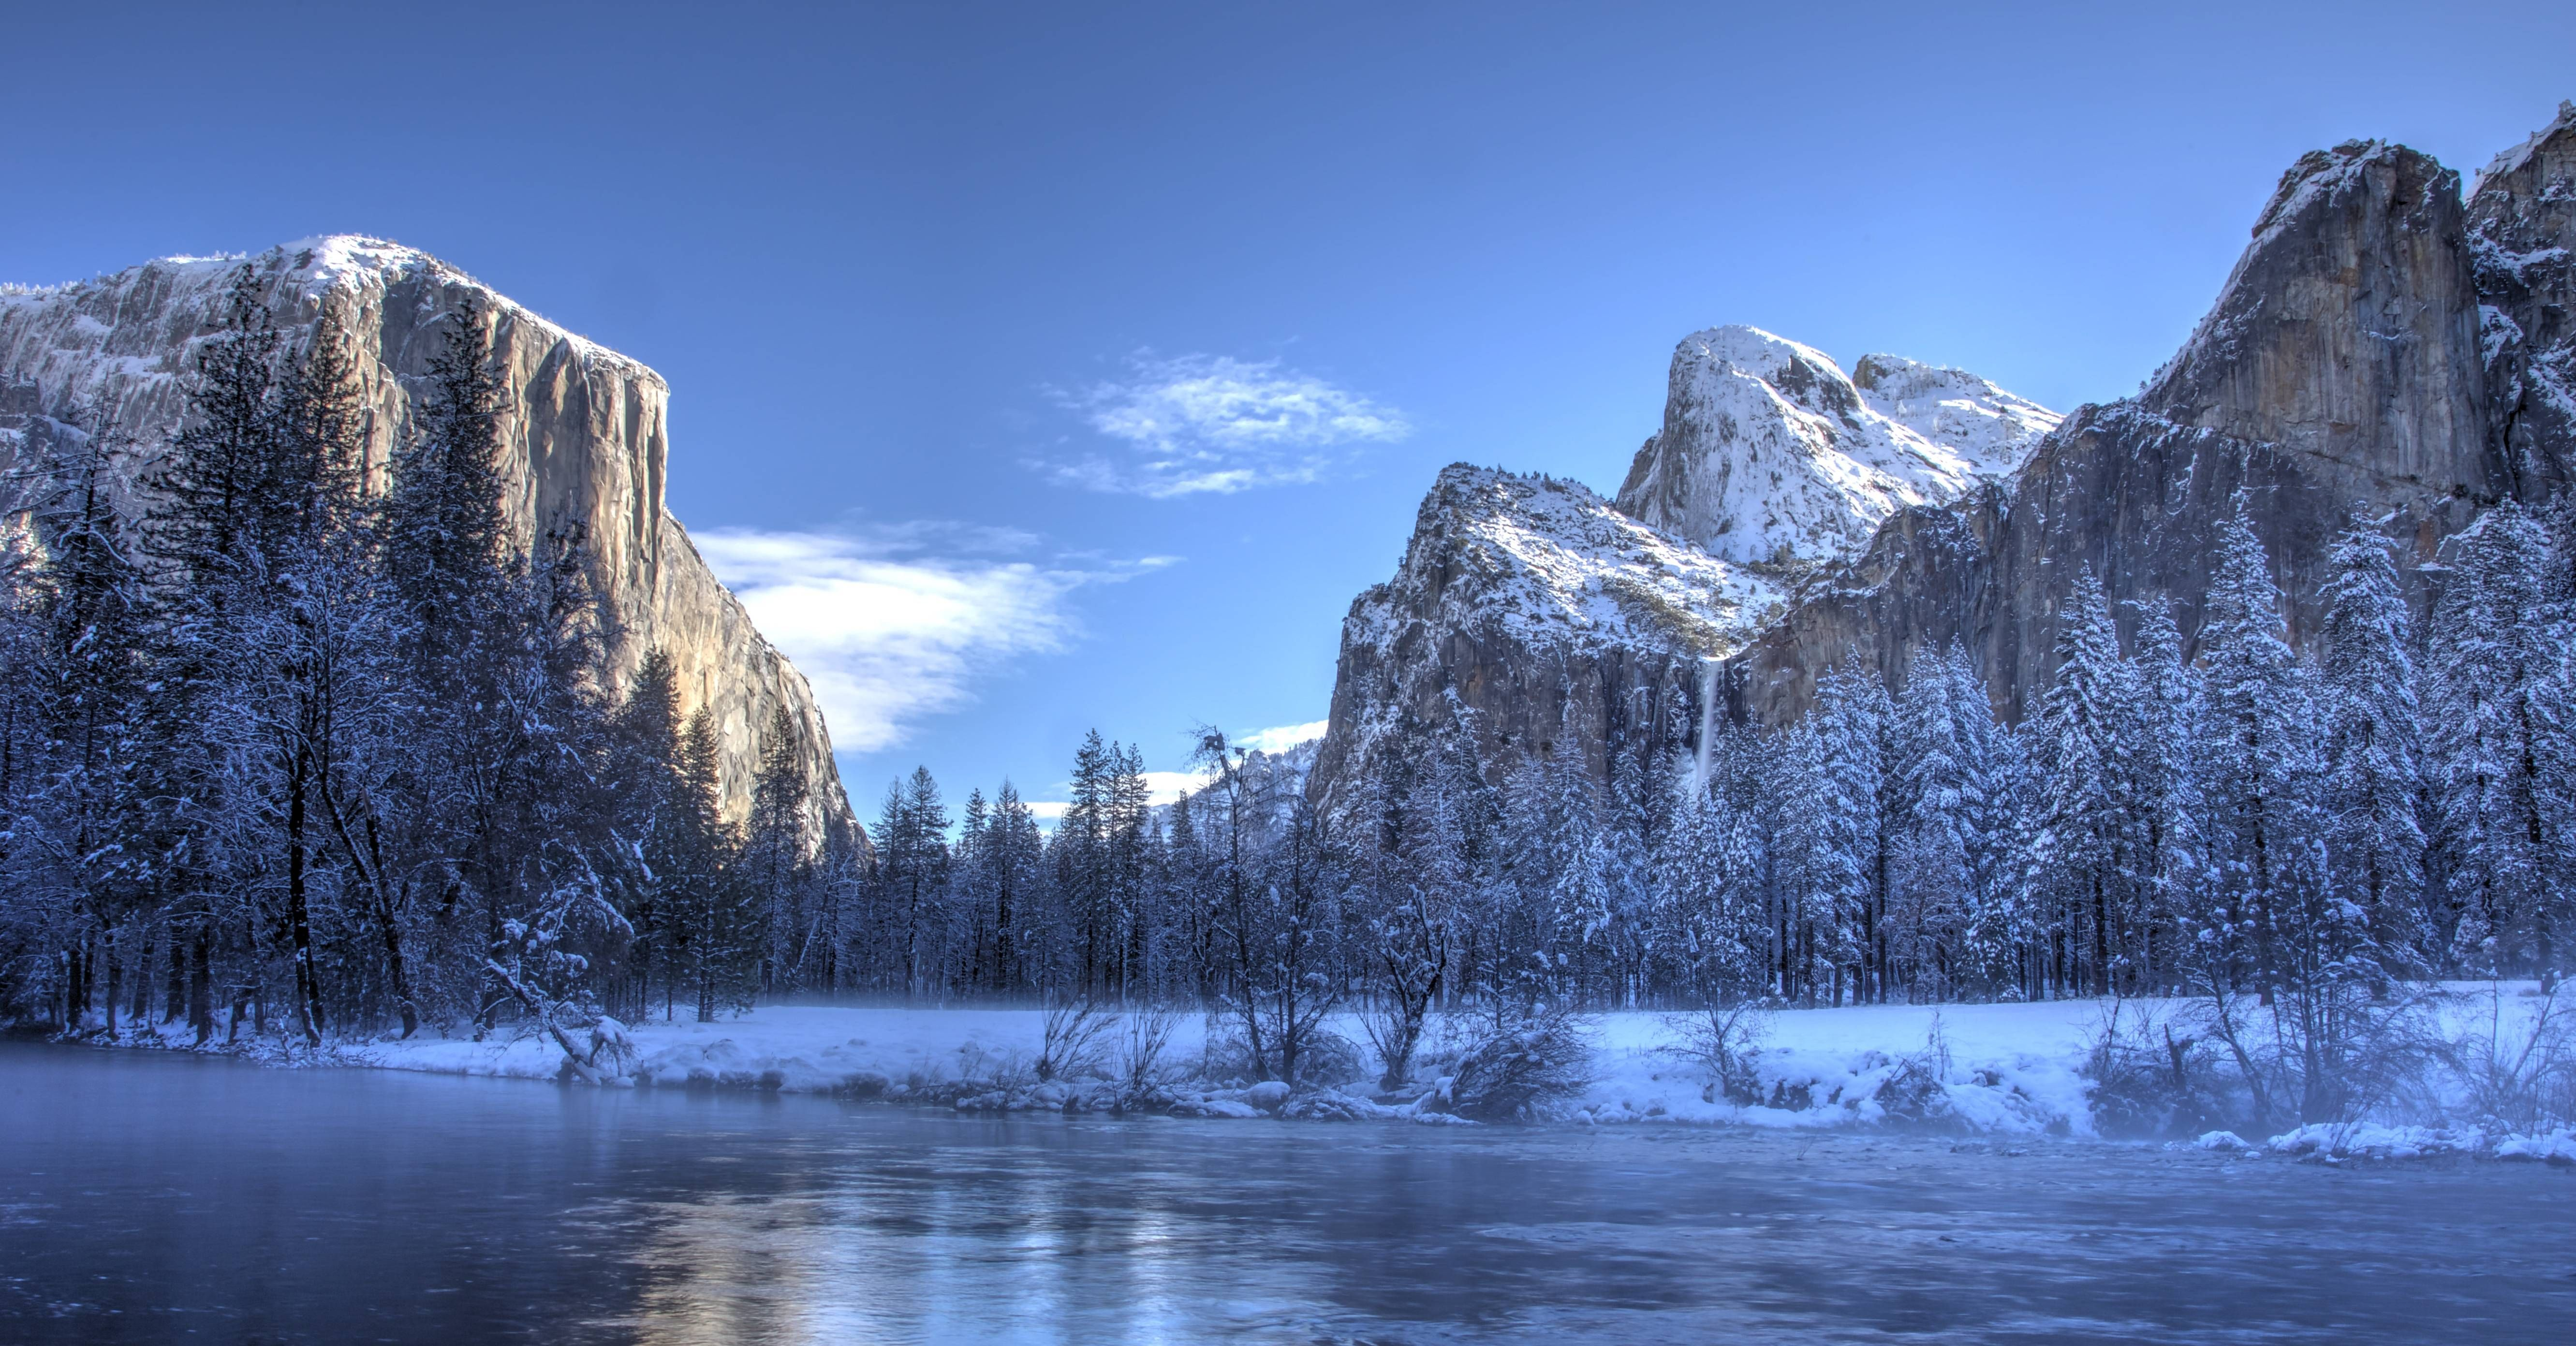 Yosemite Looks A Lot Like Narnia In Winter Colorful Landscape Paintings Landscape Photos Landscape